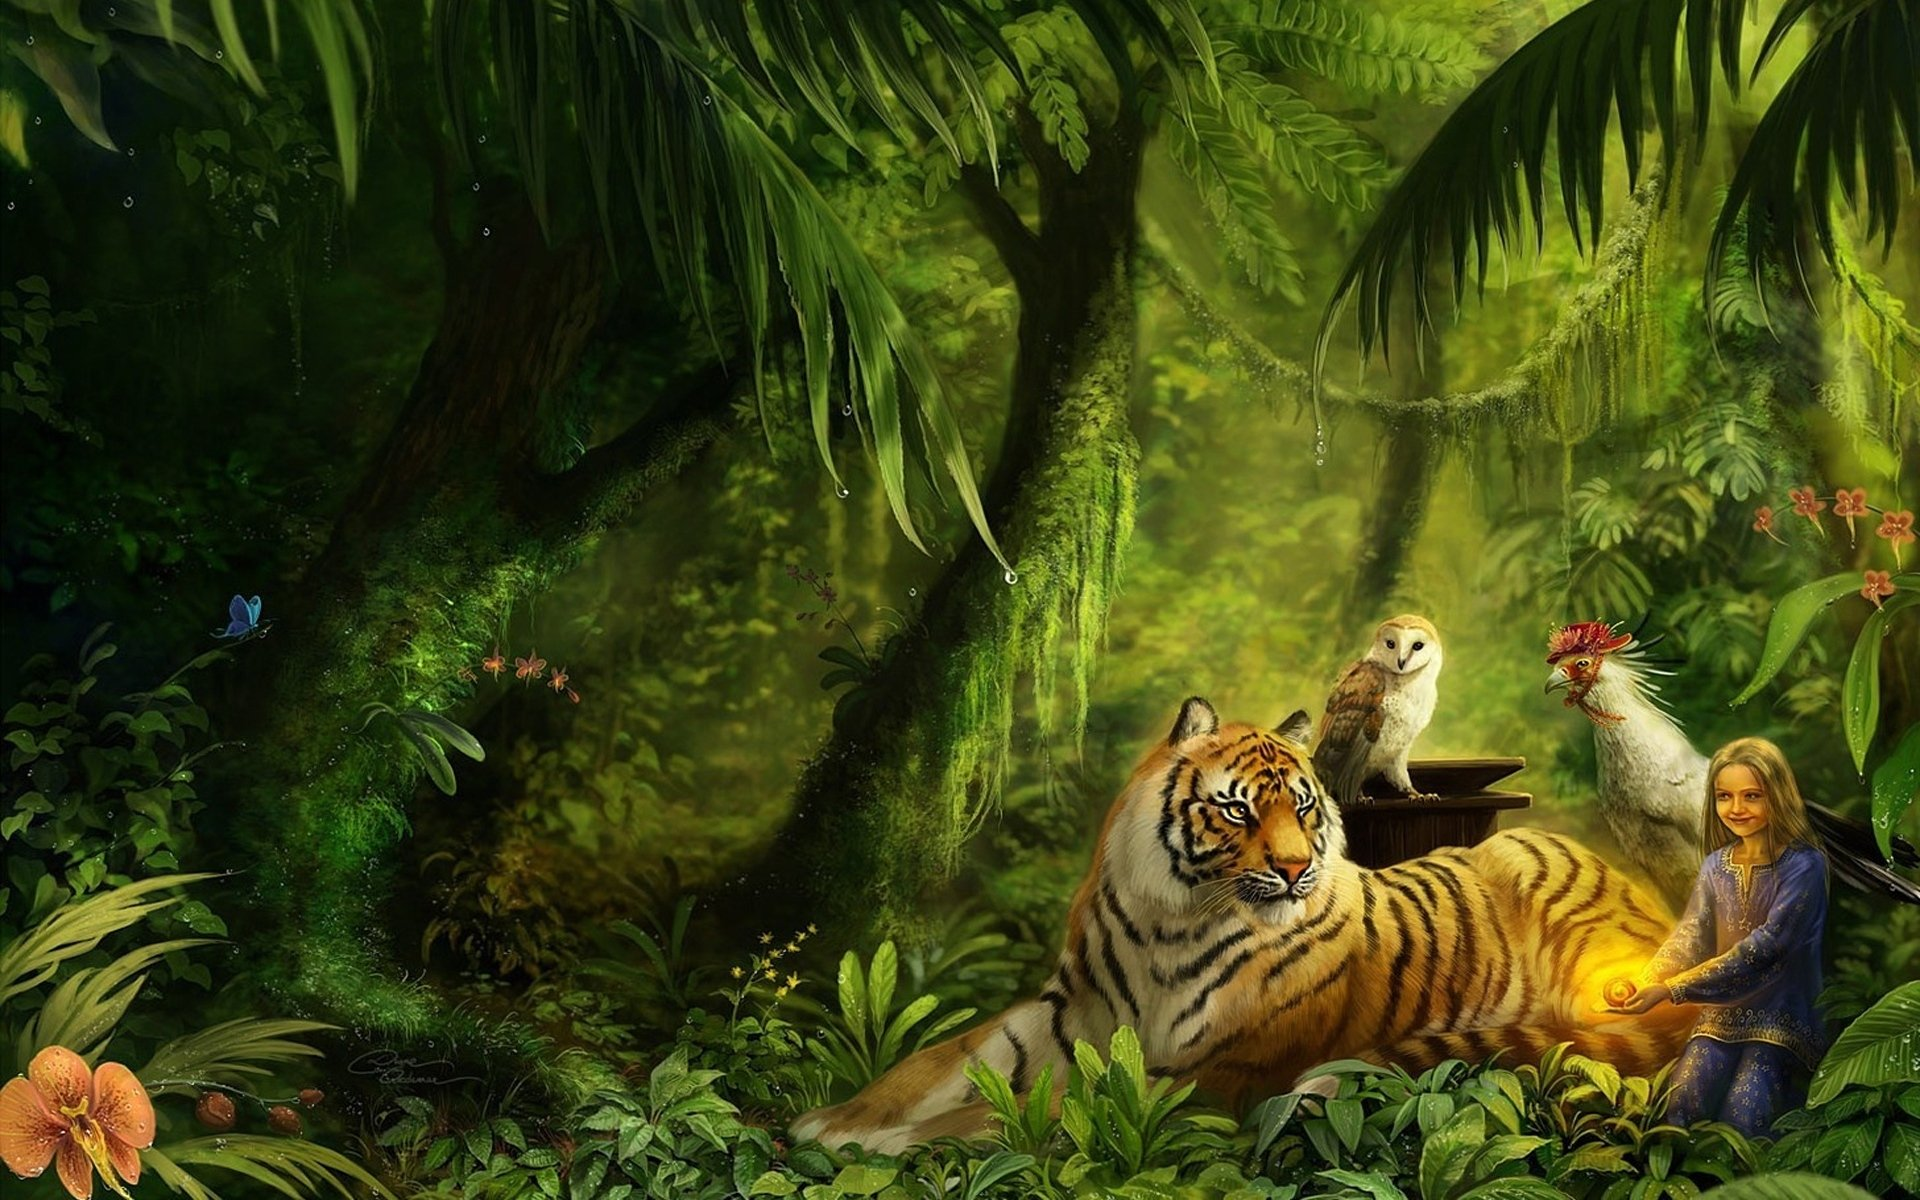 Artistic - Fantasy  Wood Girl Artistic Jungle Forest Rainforest Lion Little Girl Child Tree Owl Bird Tiger Wallpaper